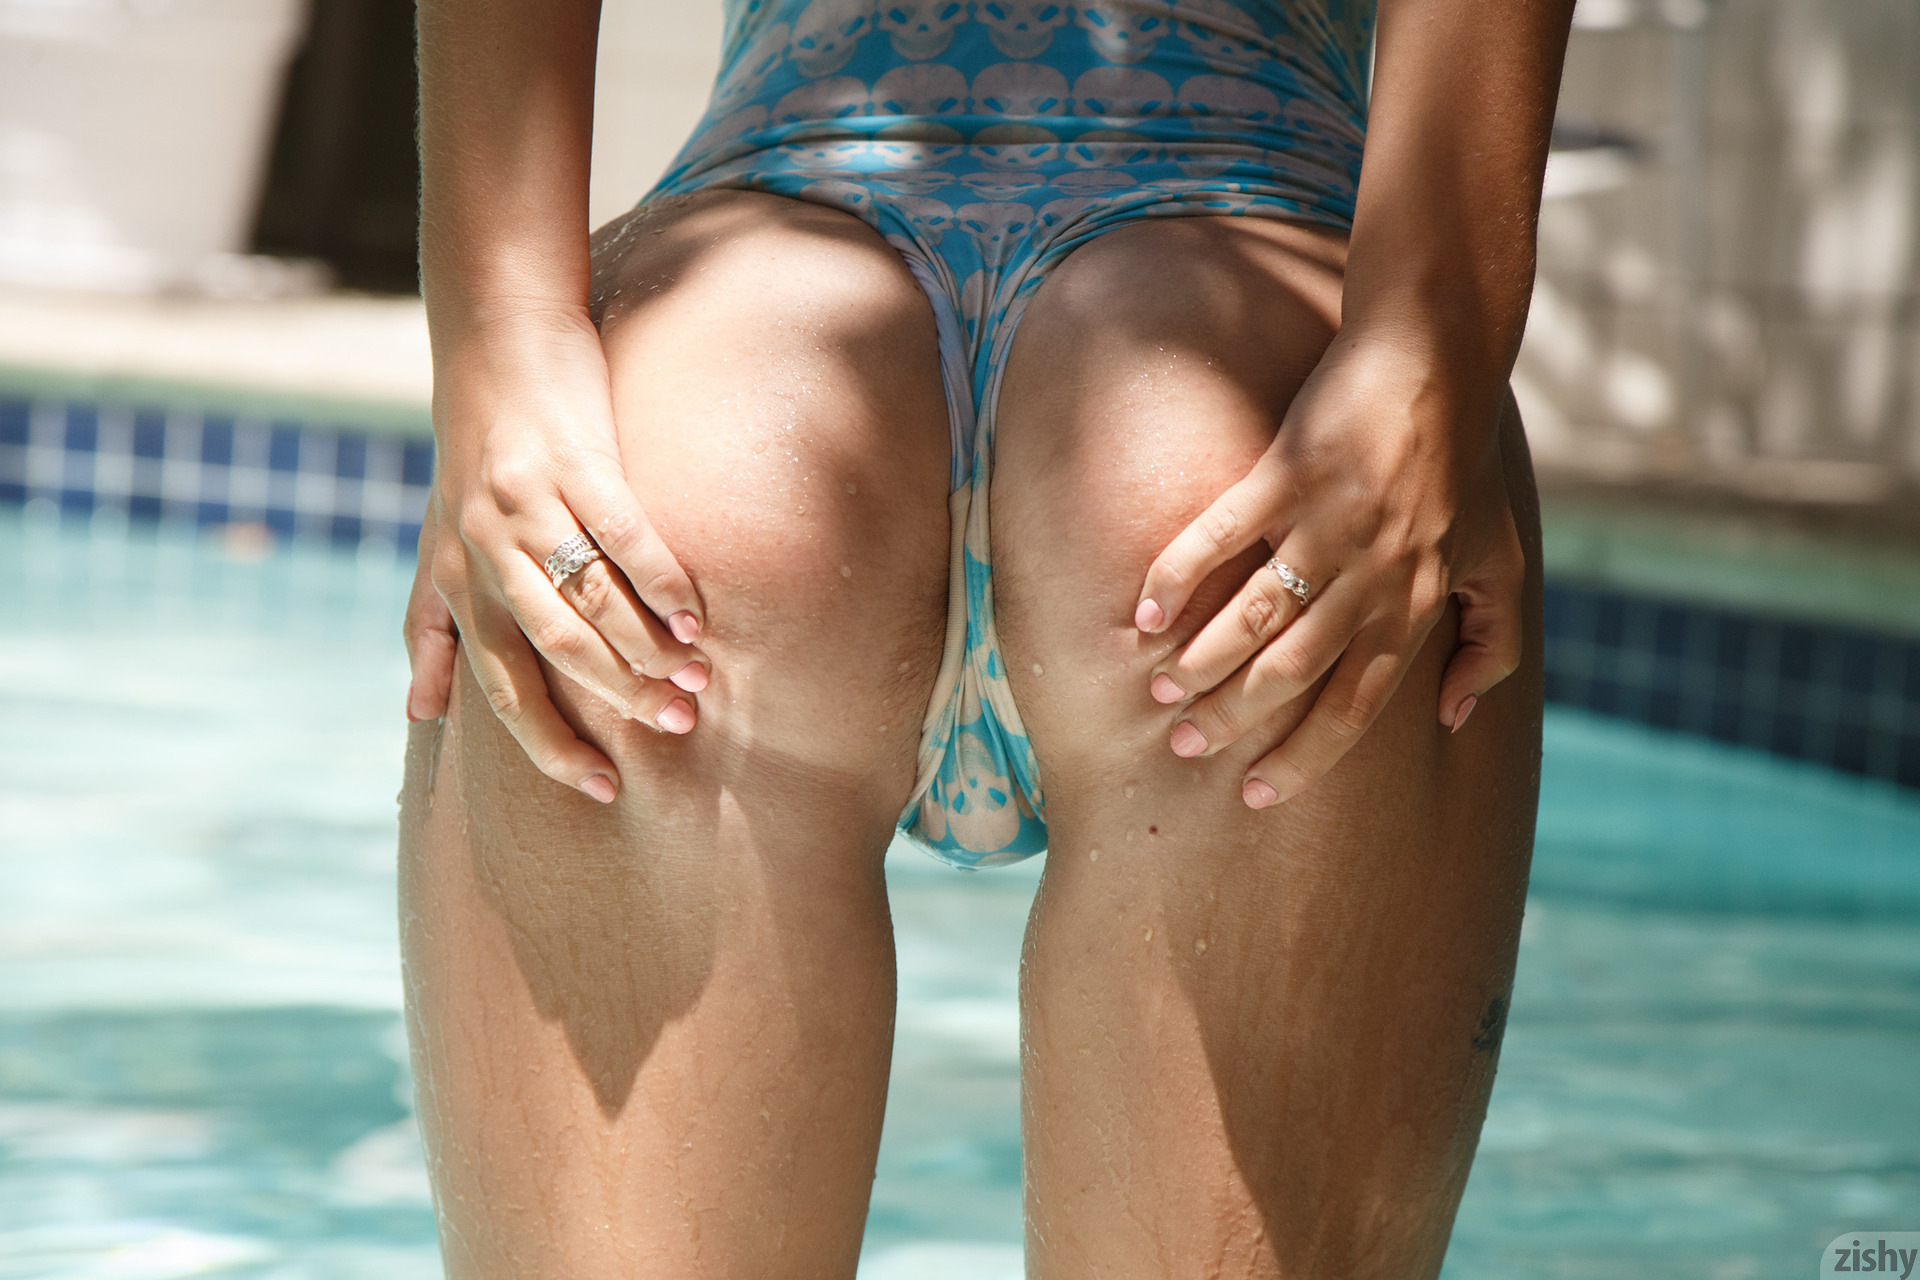 Lily Ivy Poolside Feminism 0082